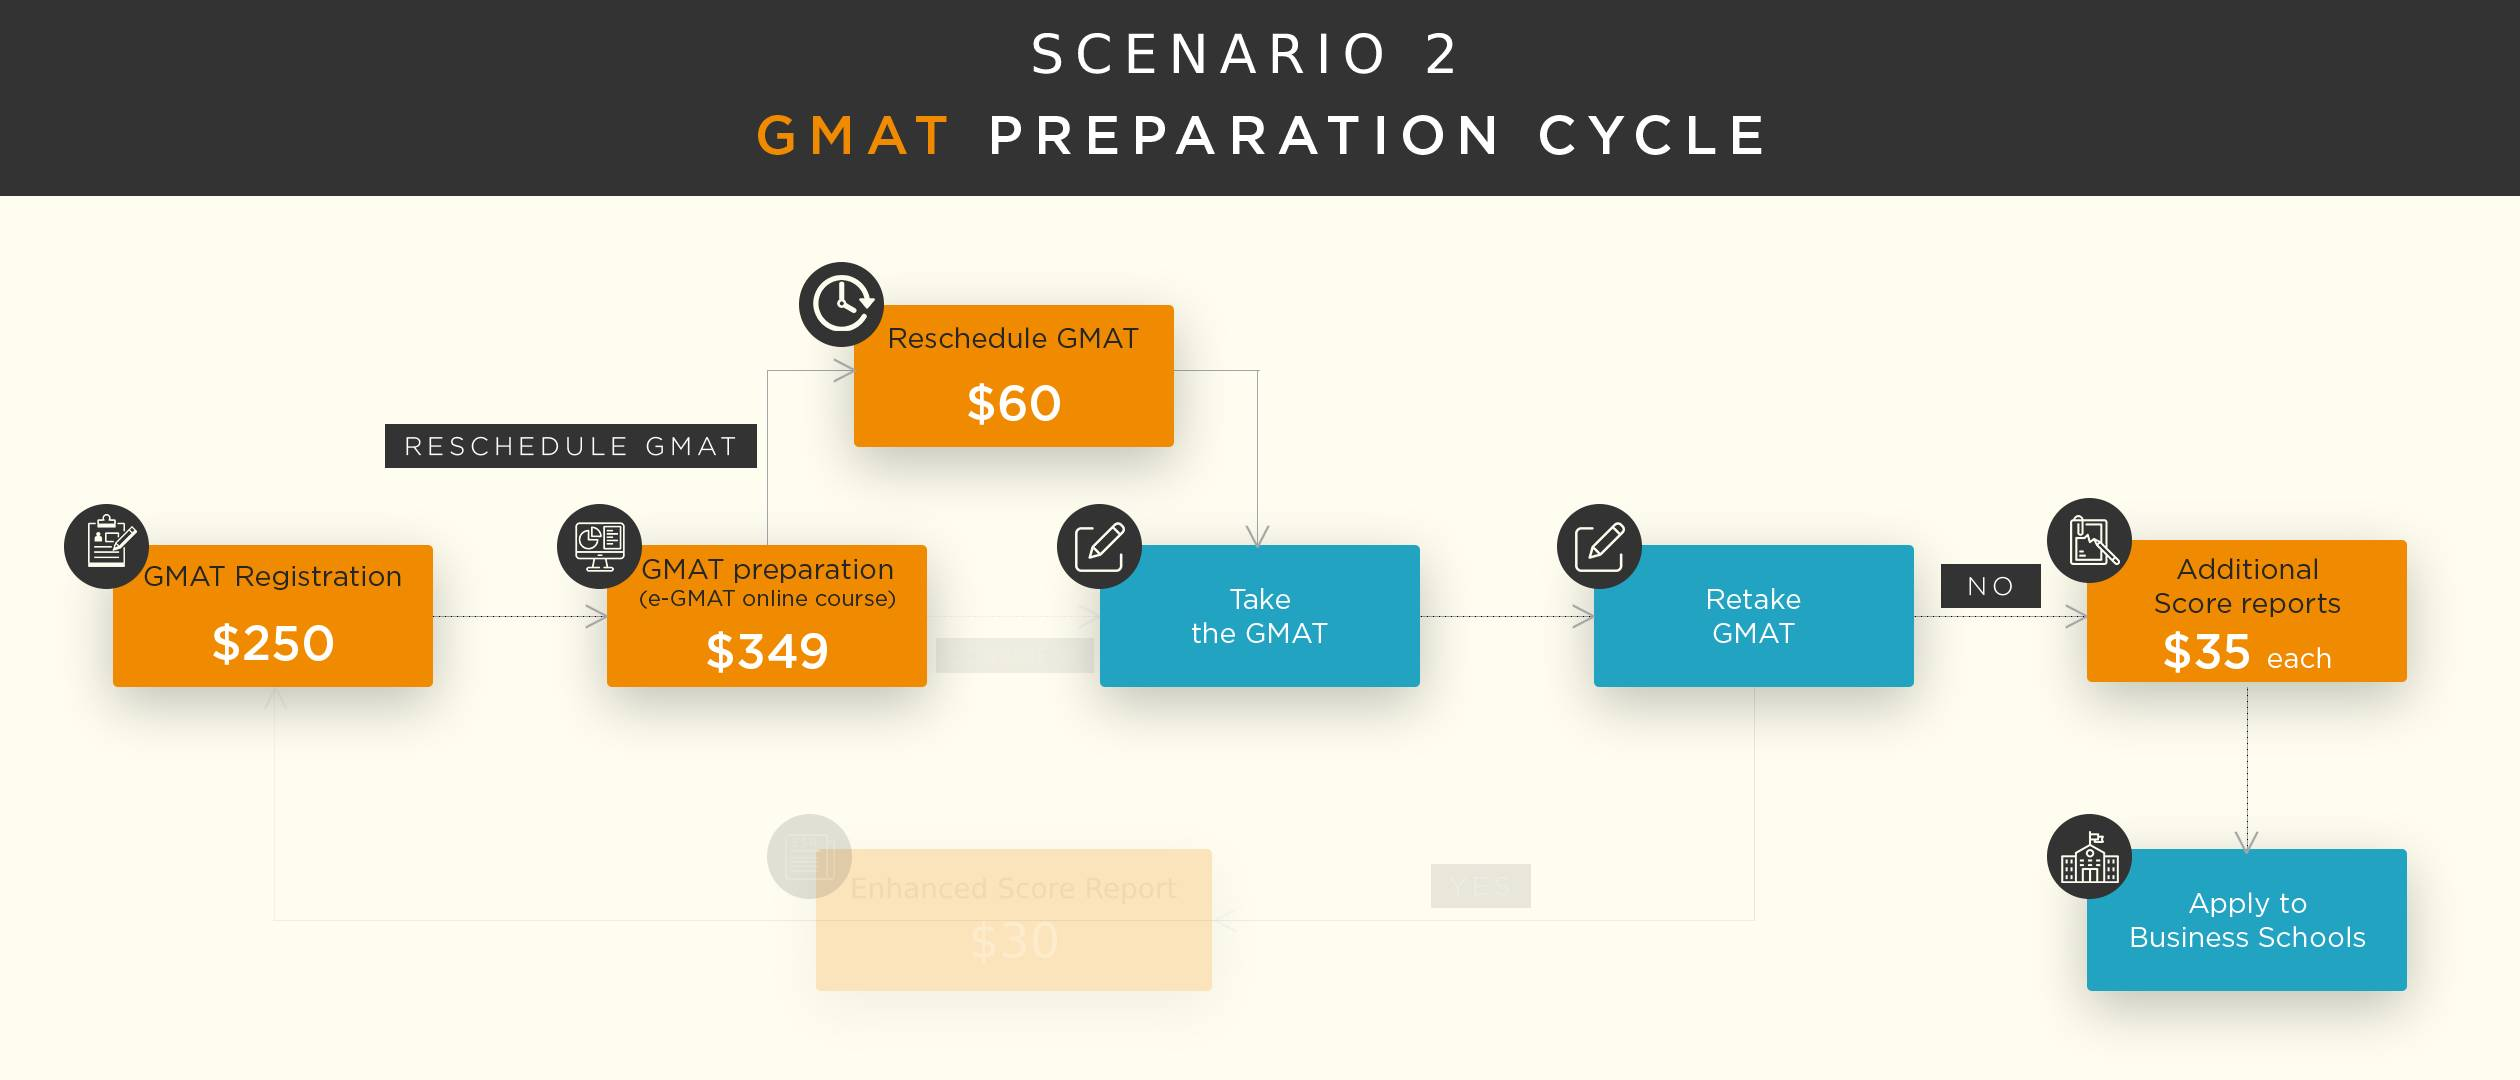 GMAT-cost-fees-preparation-cycle-2